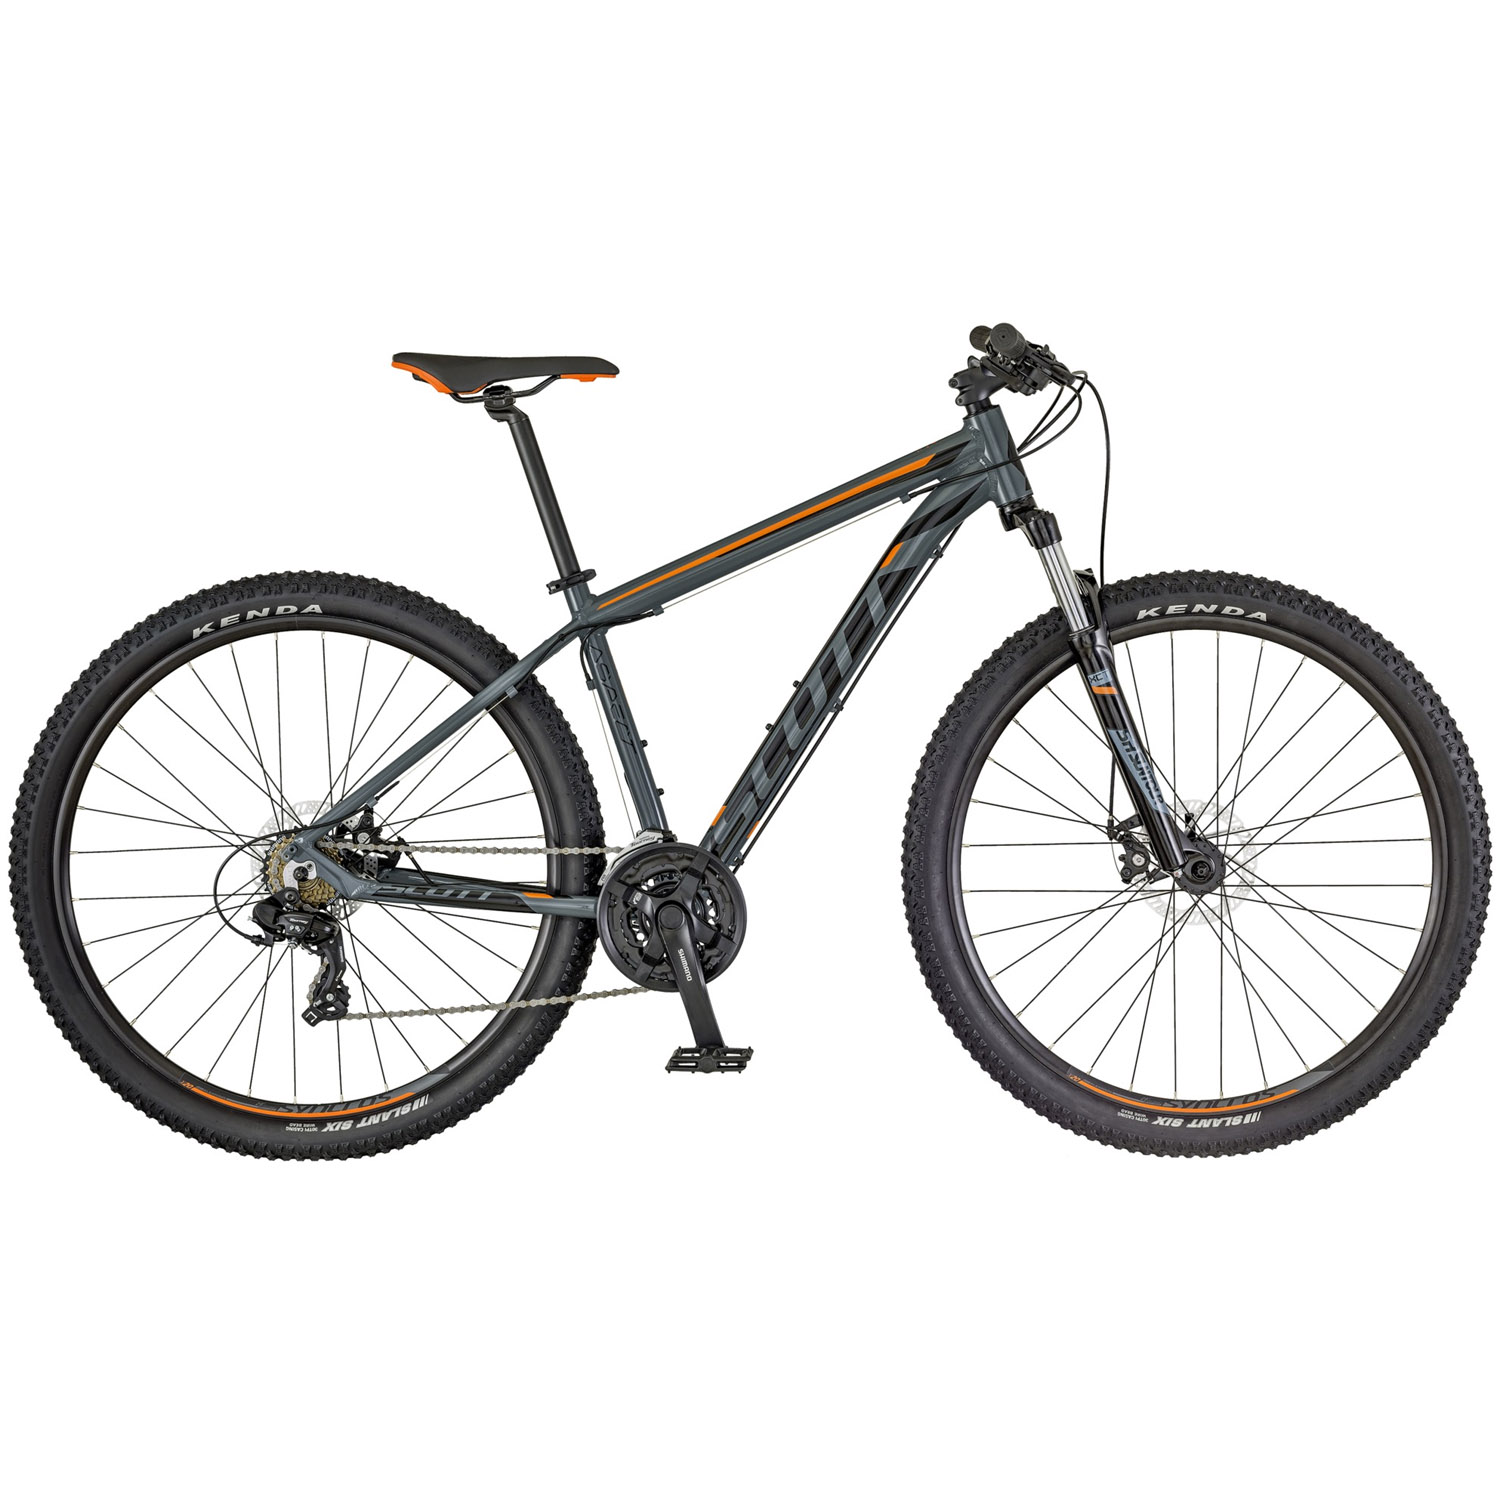 scott aspect 970 hardtail mountainbike 29 zoll 44 cm m. Black Bedroom Furniture Sets. Home Design Ideas